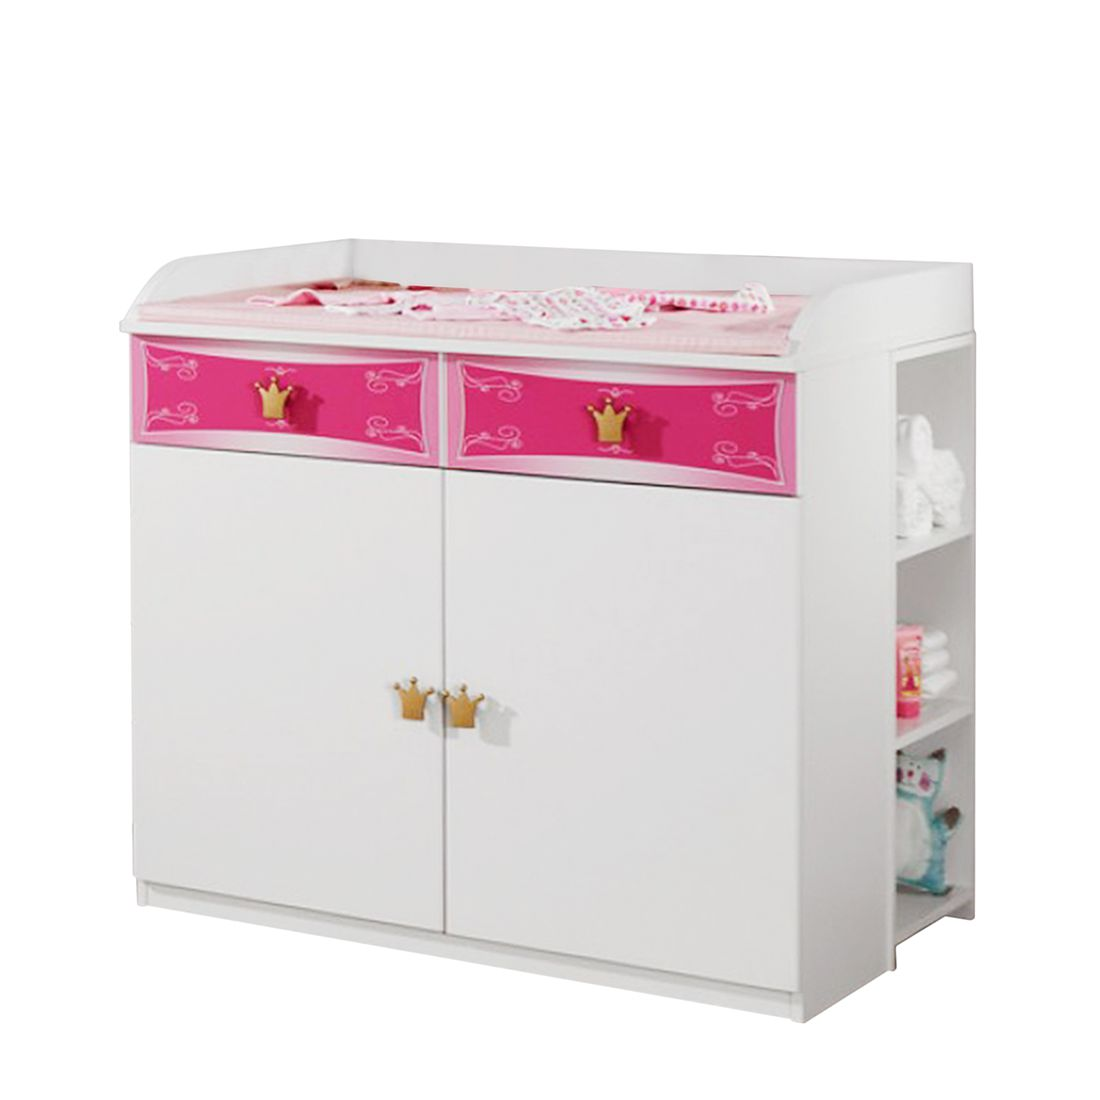 Commode à langer Kate - Couronnes décoratives dorées Blanc / Rose, Rauch Packs